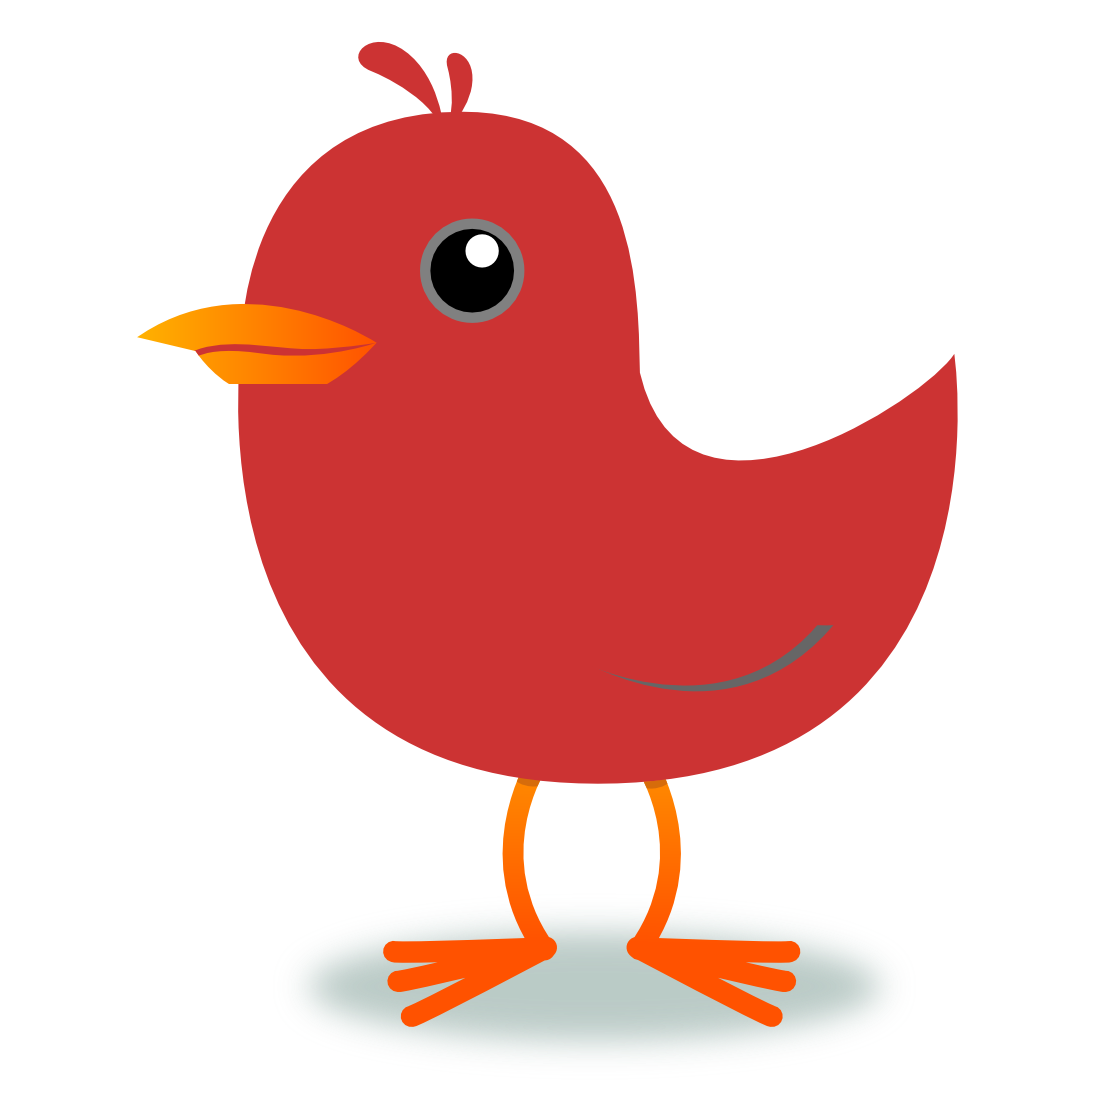 Cardinal red robin pencil. Worm clipart bird